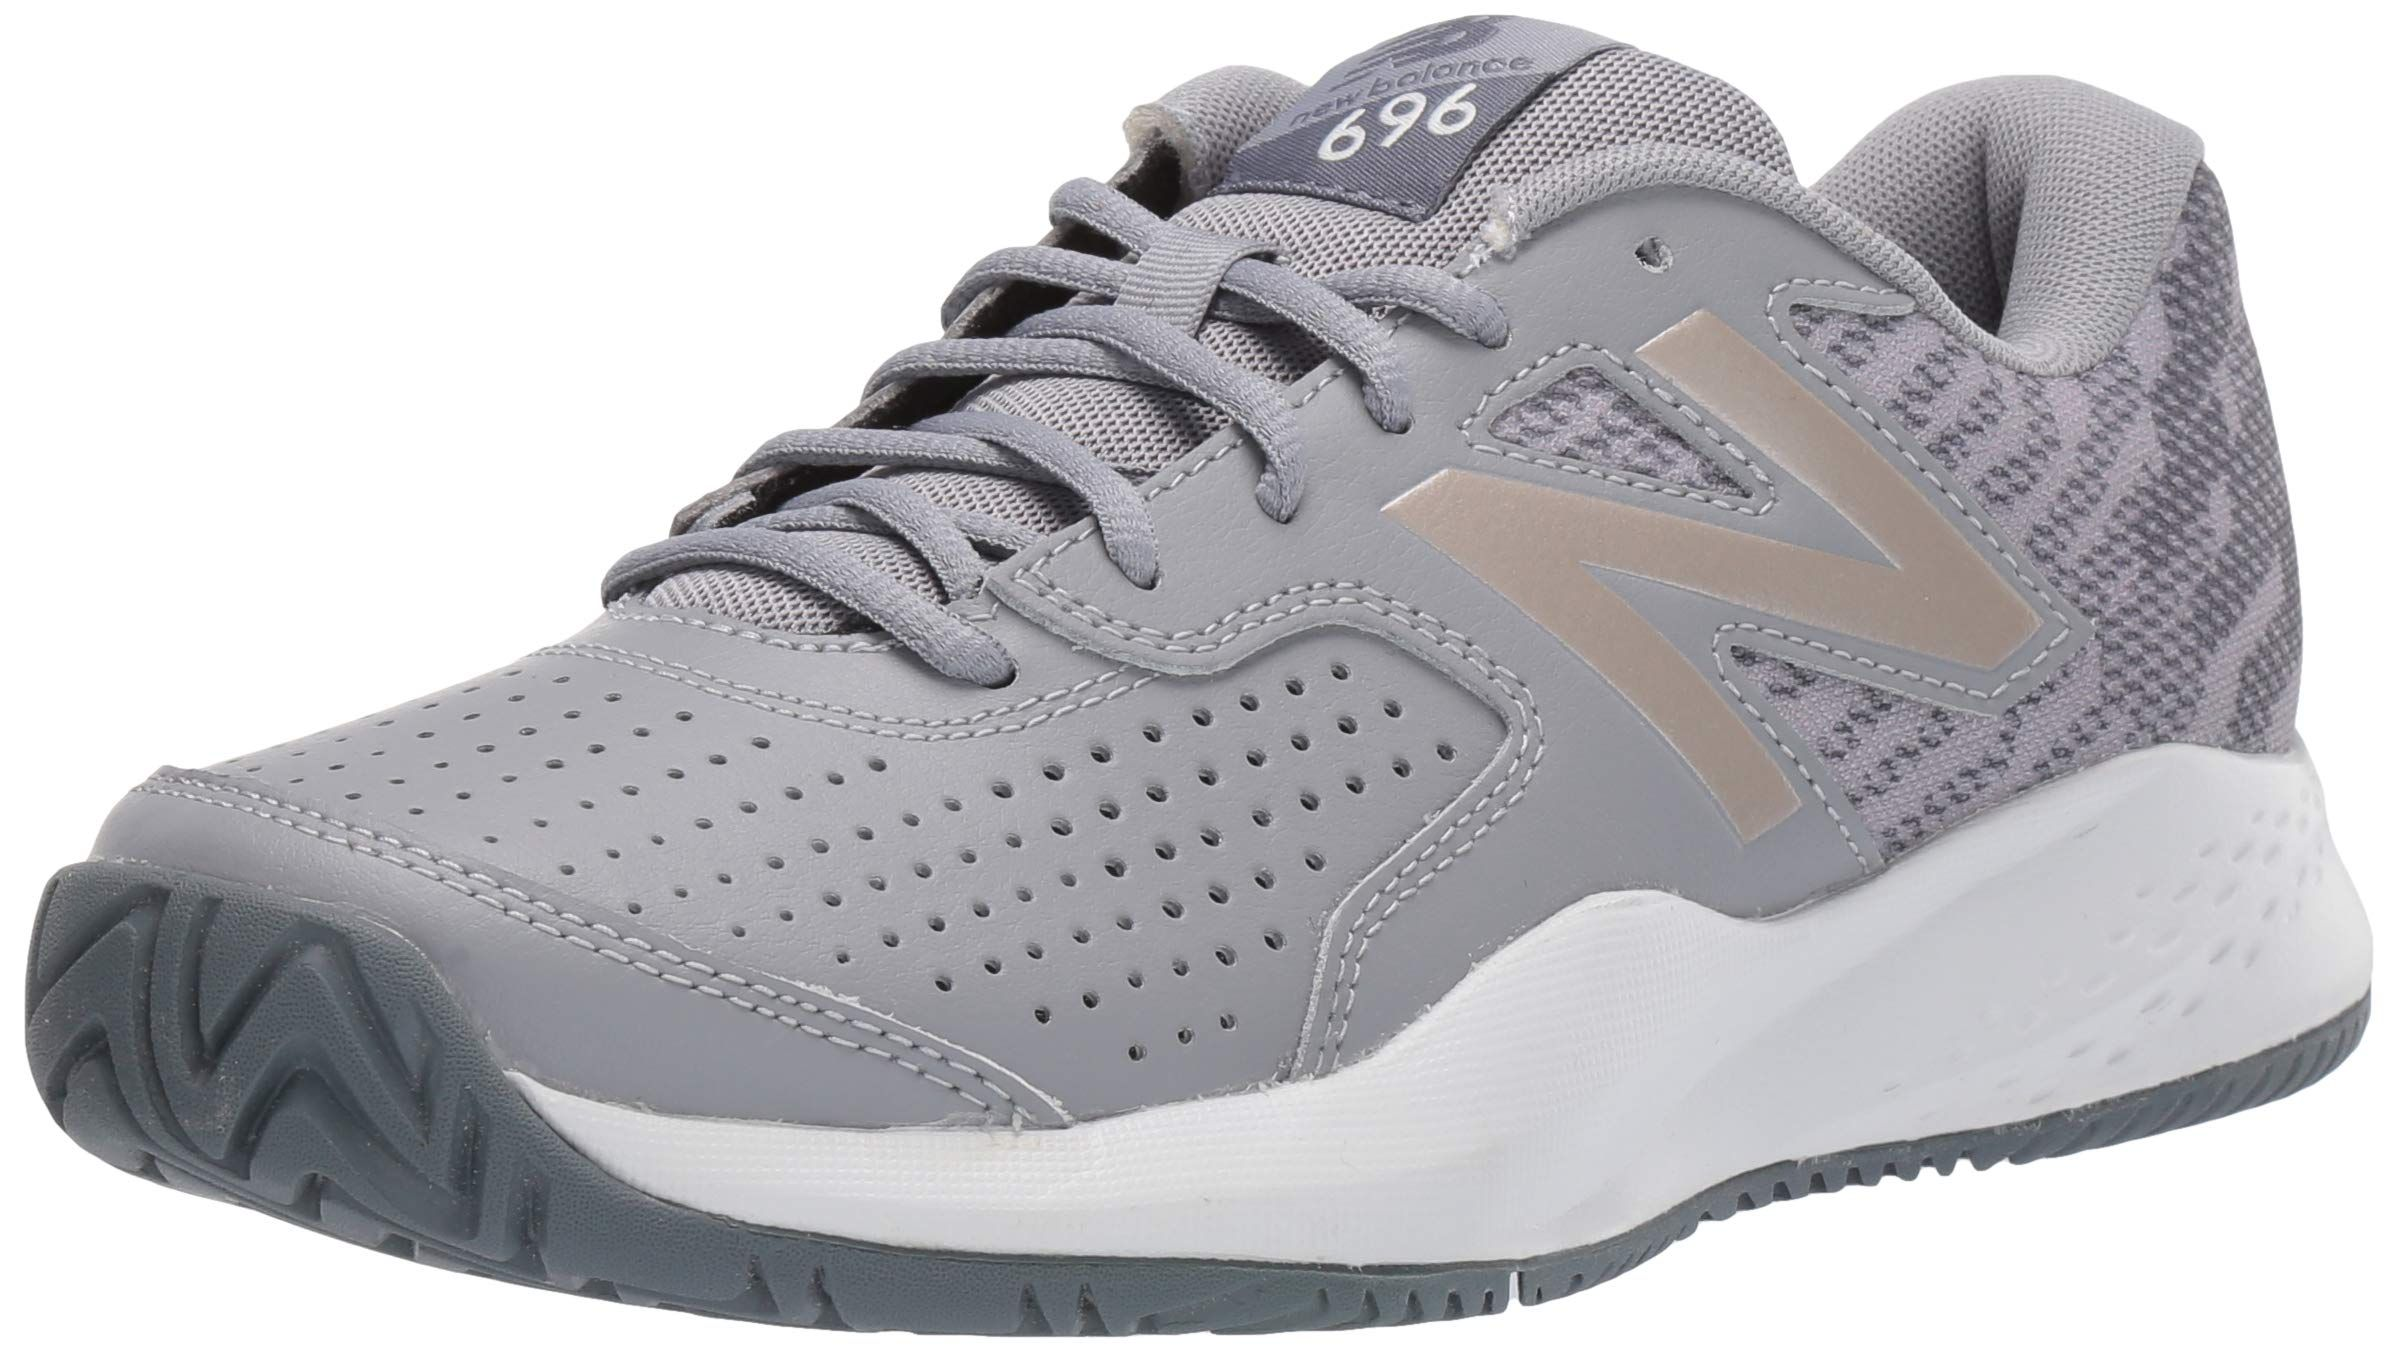 New Balance Women S 696v3 Hard Court Tennis Shoe Click Image For More Details This Is An Affiliate Link New Balance Women Tennis Shoes New Balance